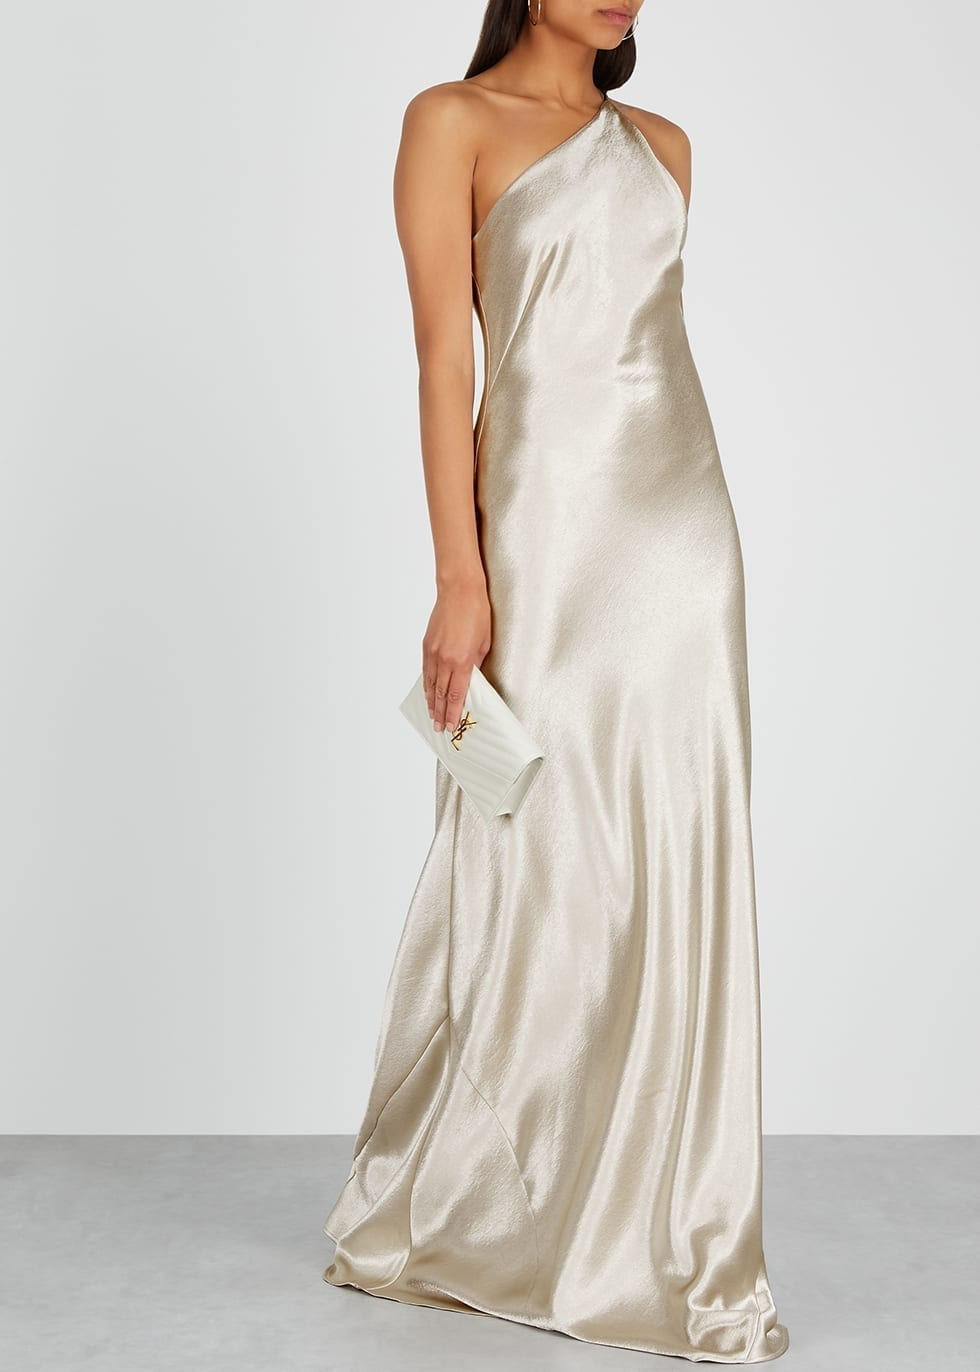 GALVAN Roxy One-shoulder Satin Gown